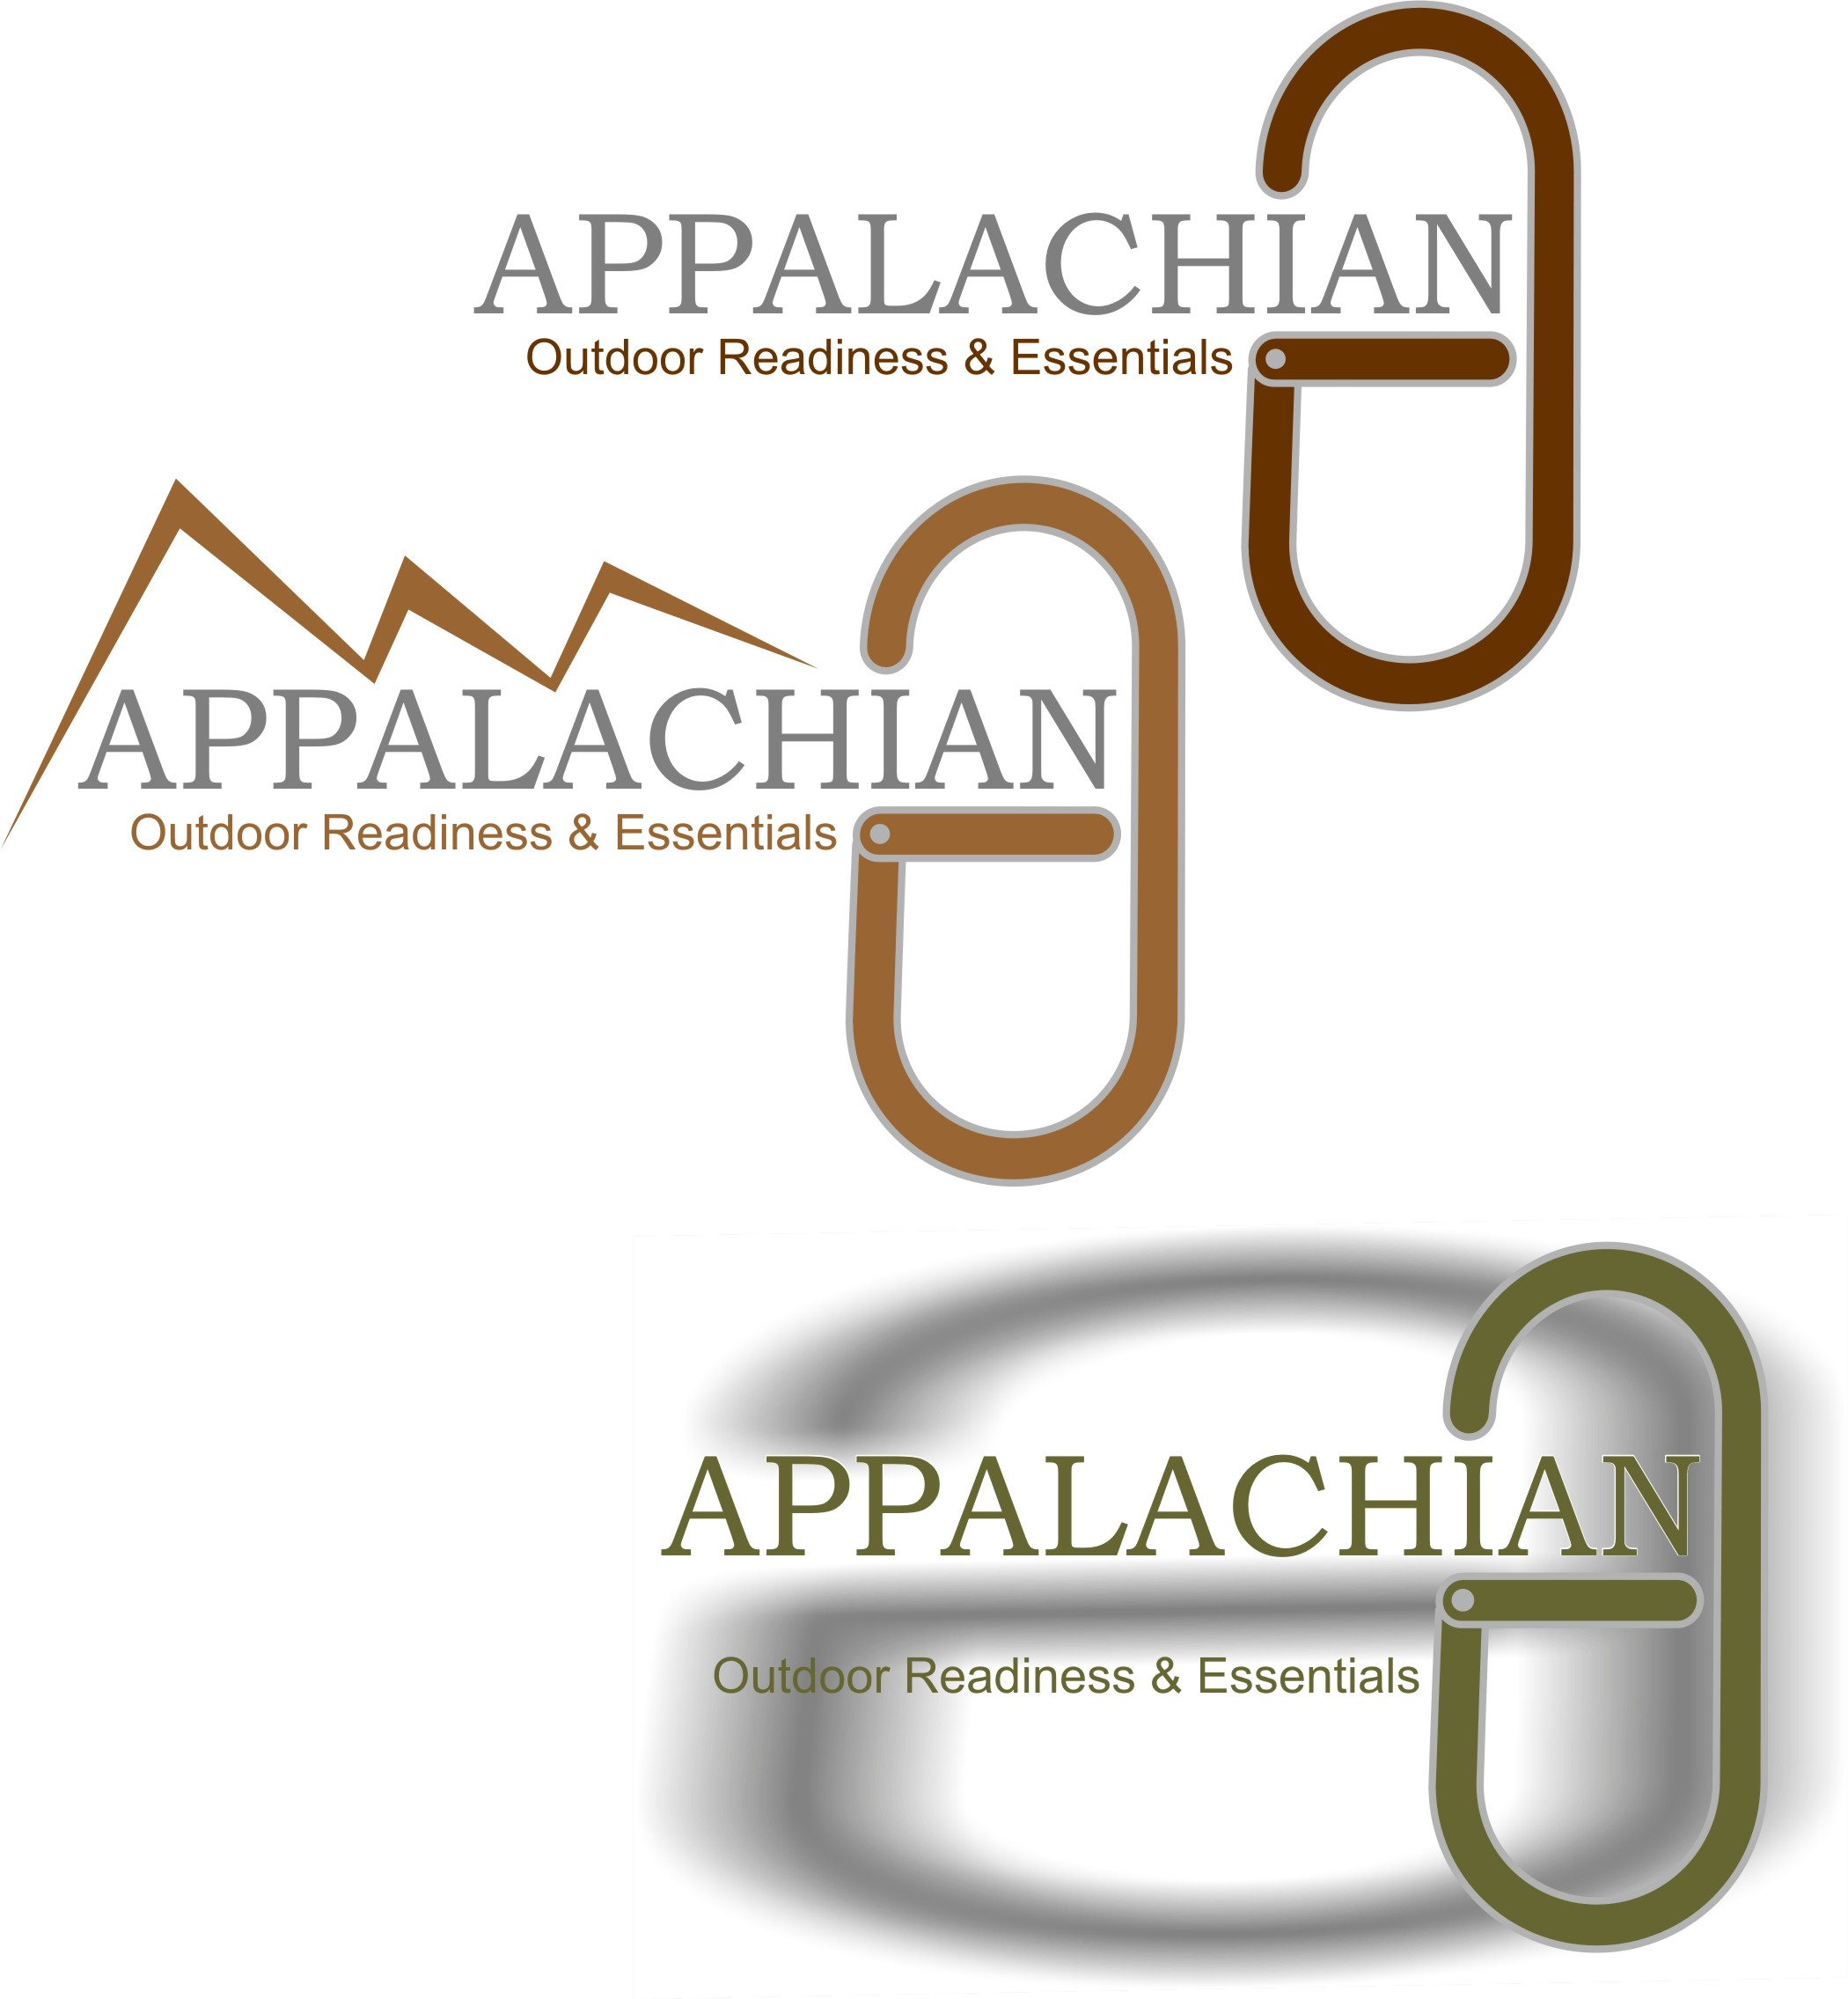 Logo Design by Korsunov Oleg - Entry No. 35 in the Logo Design Contest Imaginative Logo Design for Appalachian Outdoor Readiness & Essentials.